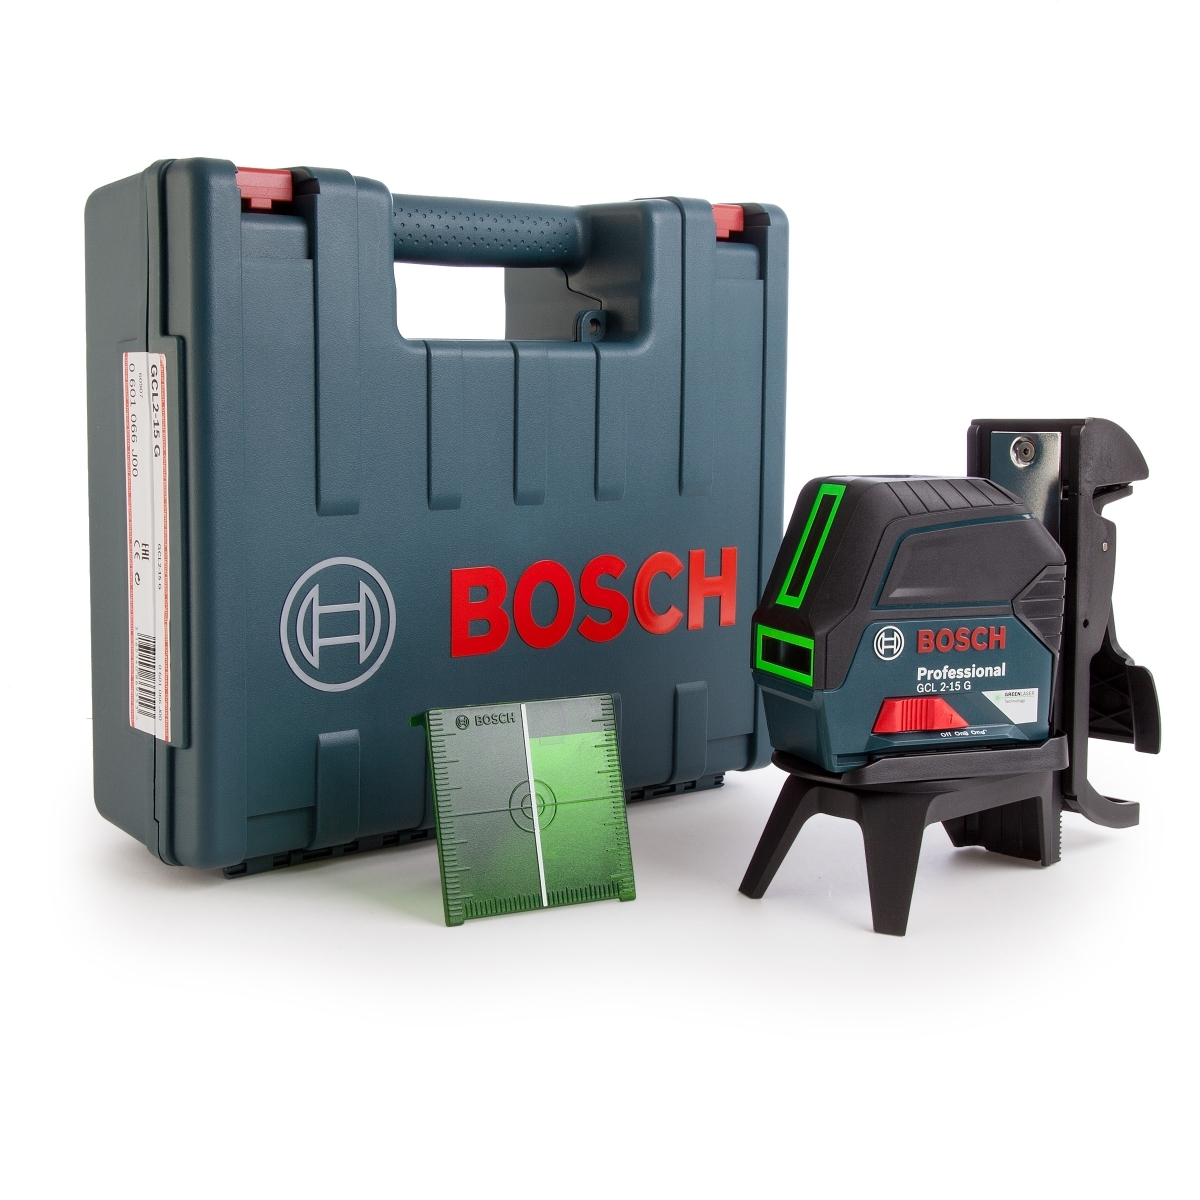 bosch gcl 2 15 g combi green laser leveler my power tools. Black Bedroom Furniture Sets. Home Design Ideas